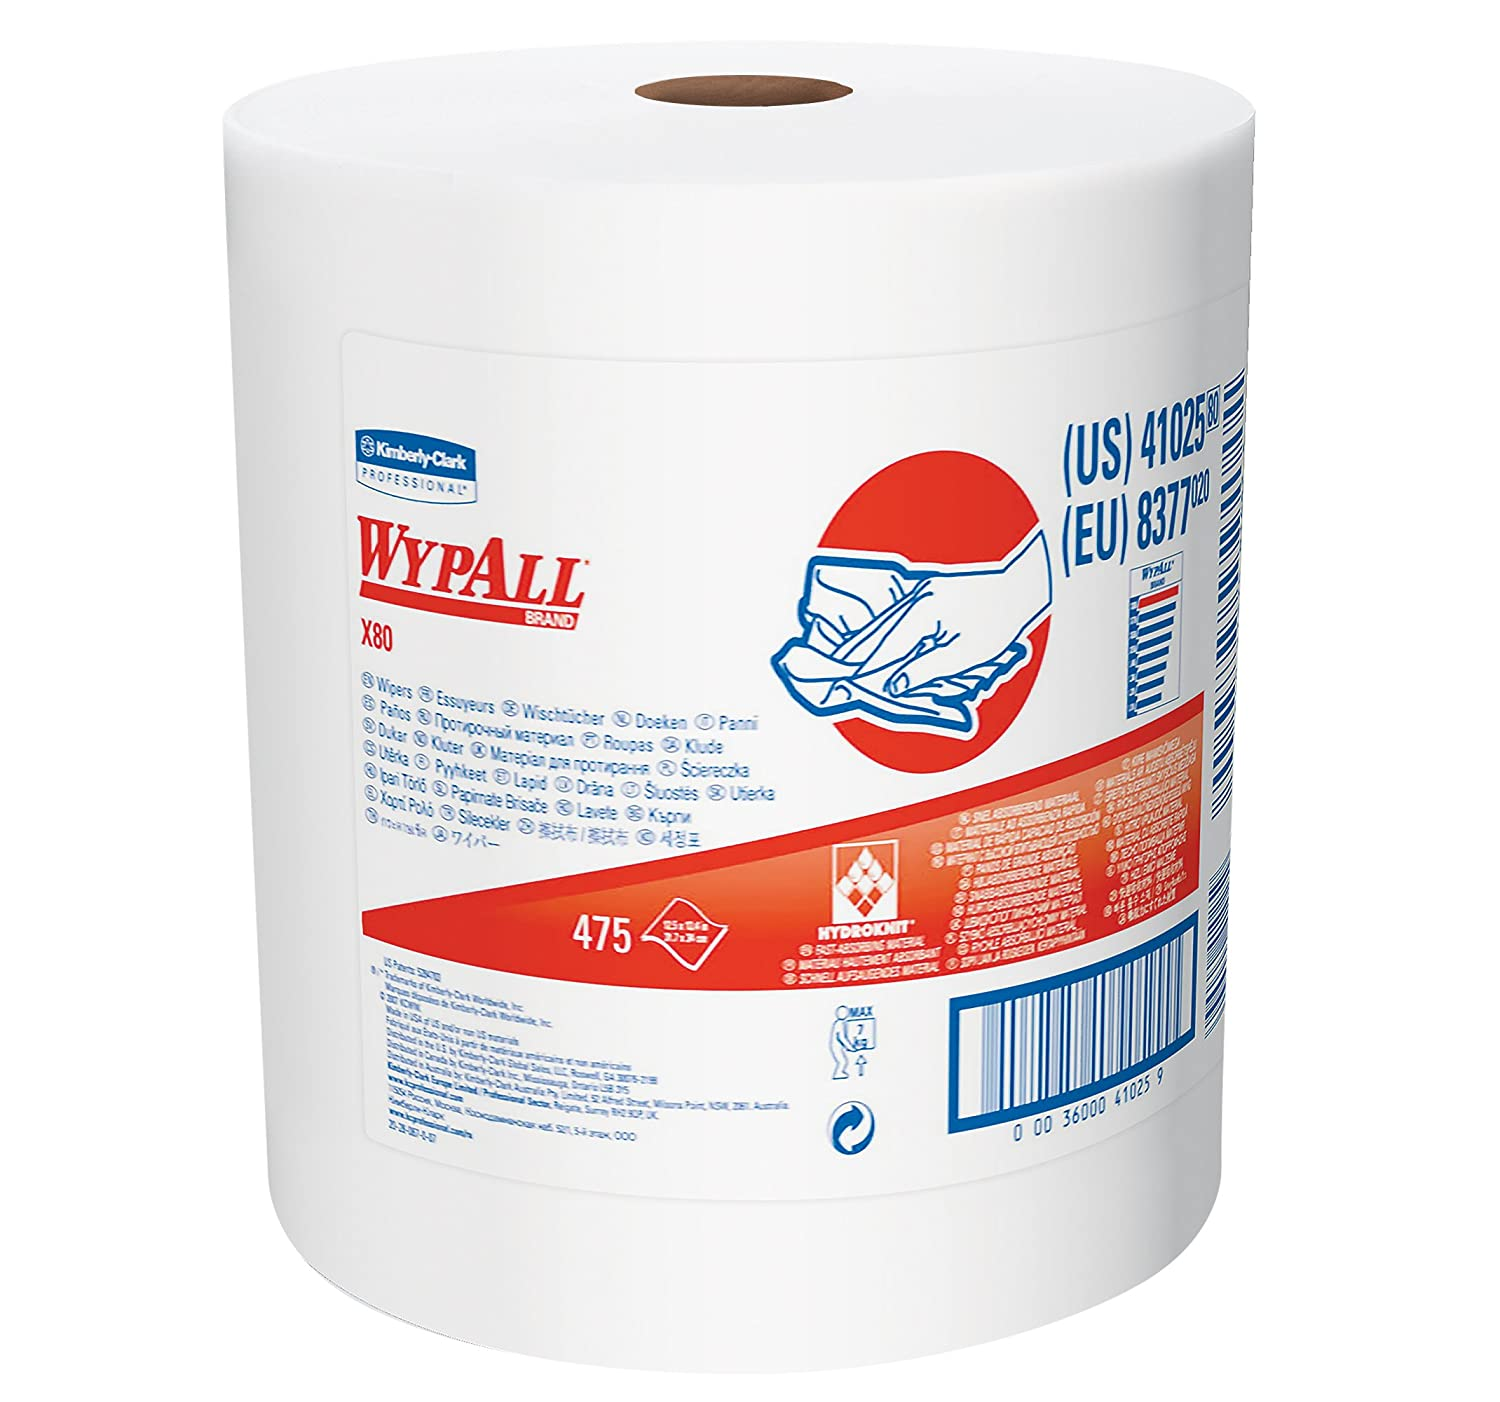 Wypall X80 Reusable Wipes 41025 Extended Use Cloths Jumbo Roll White 475 Sheets Roll; 1 Roll Case